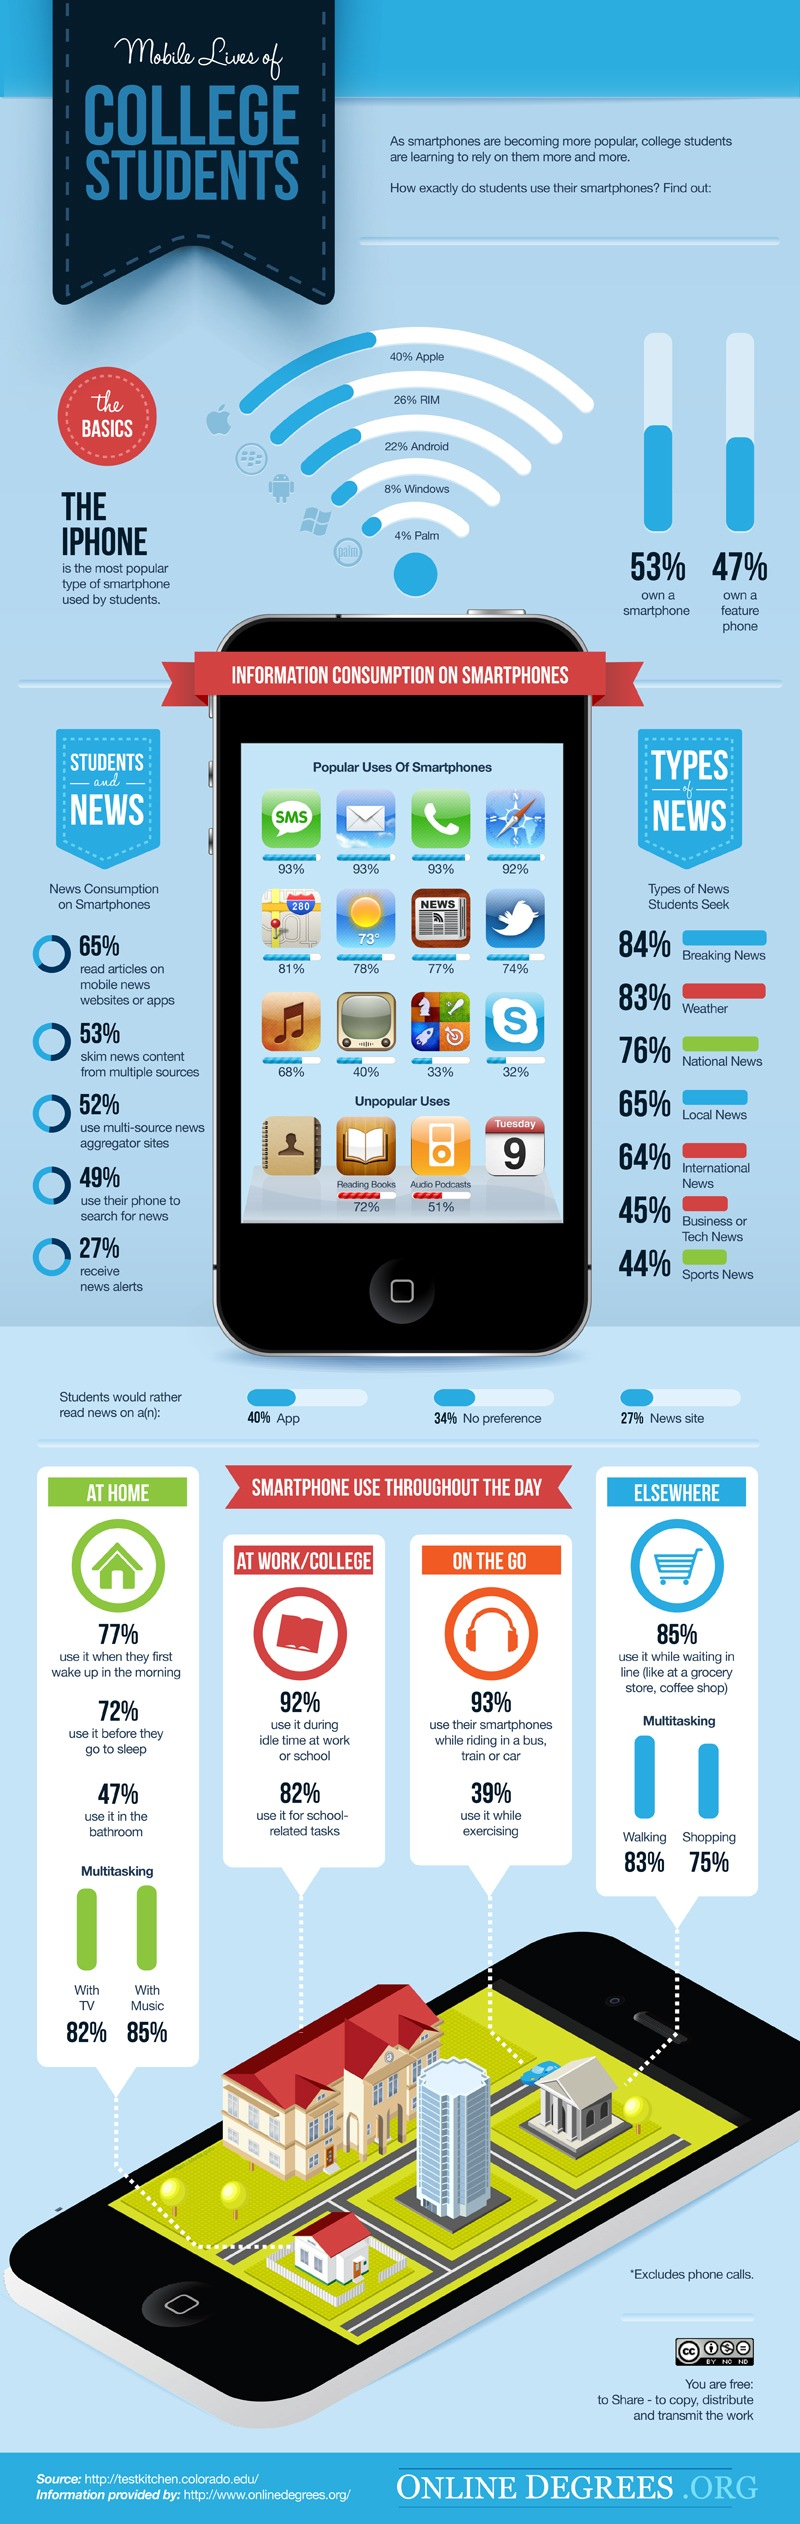 Infographic: How Exactly Are Students Using Their Smartphones?